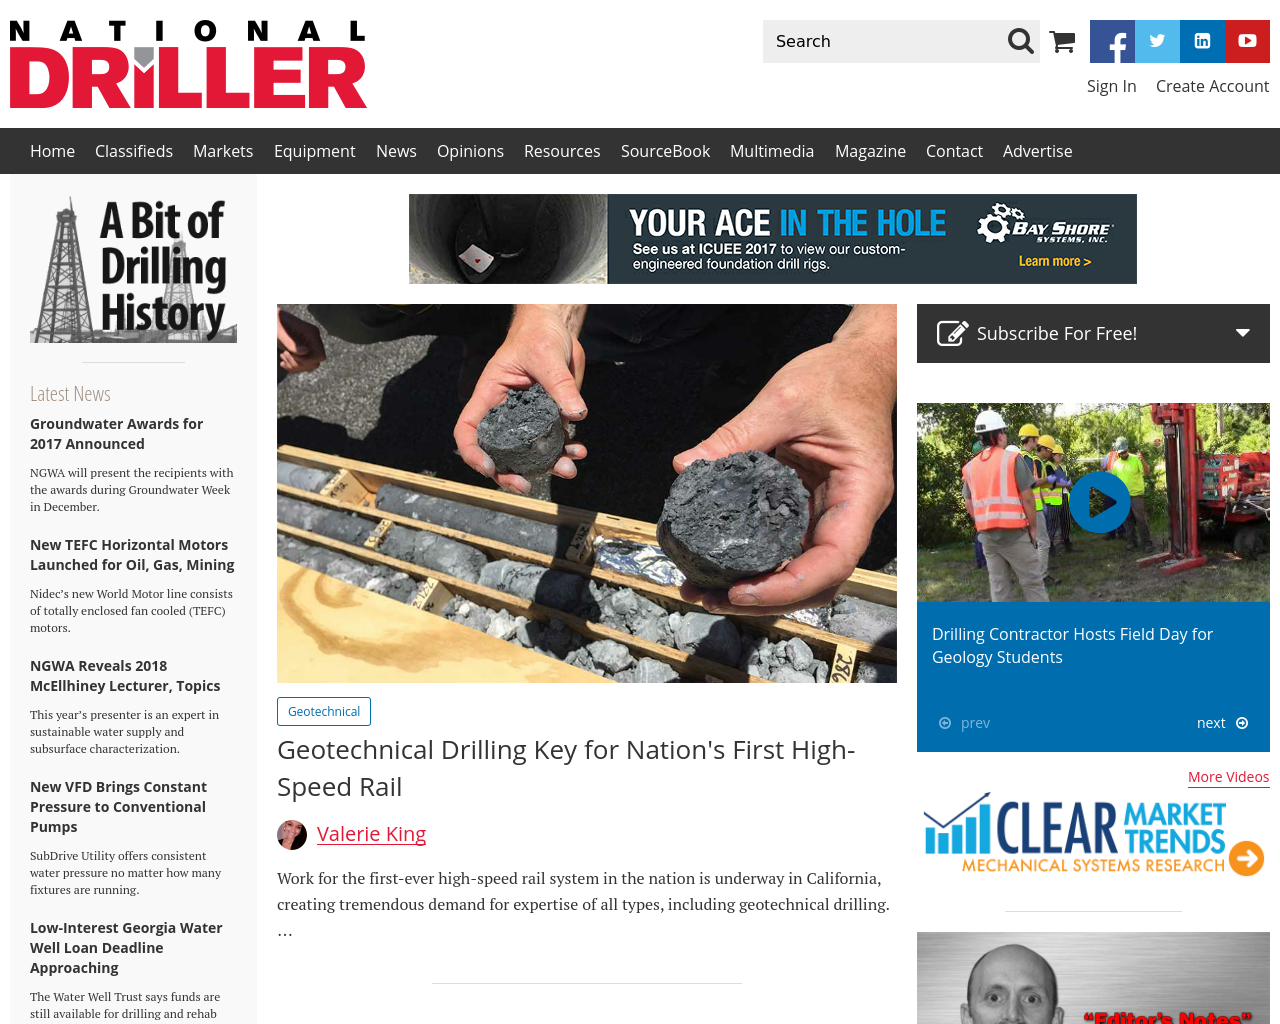 National-Driller-Advertising-Reviews-Pricing